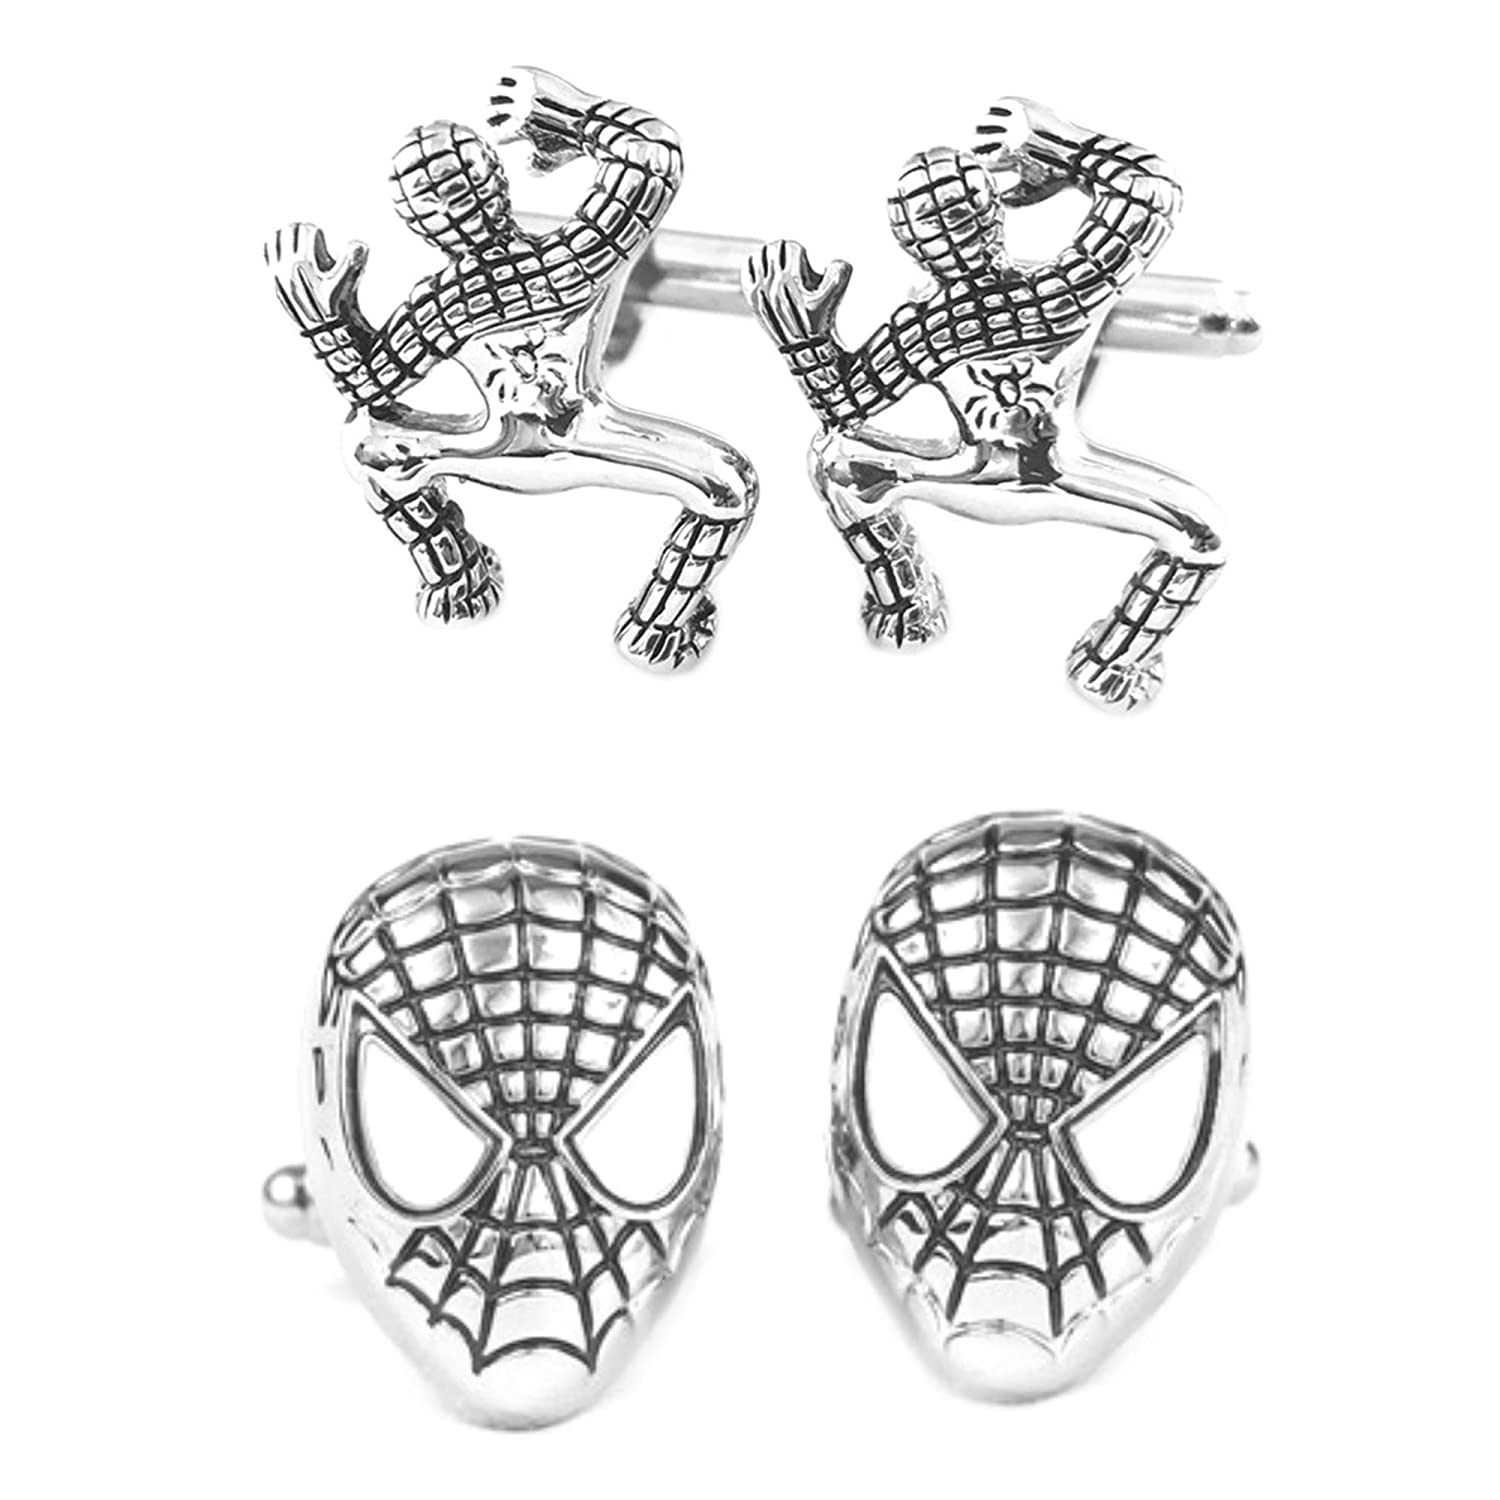 Outlander Gear Marvel Comics 2 Pairs Spiderman Crawling & Spiderman Silver Superhero 2018 Movie Logos - Wedding Groom Groomsmen Mens Boys Cufflinks